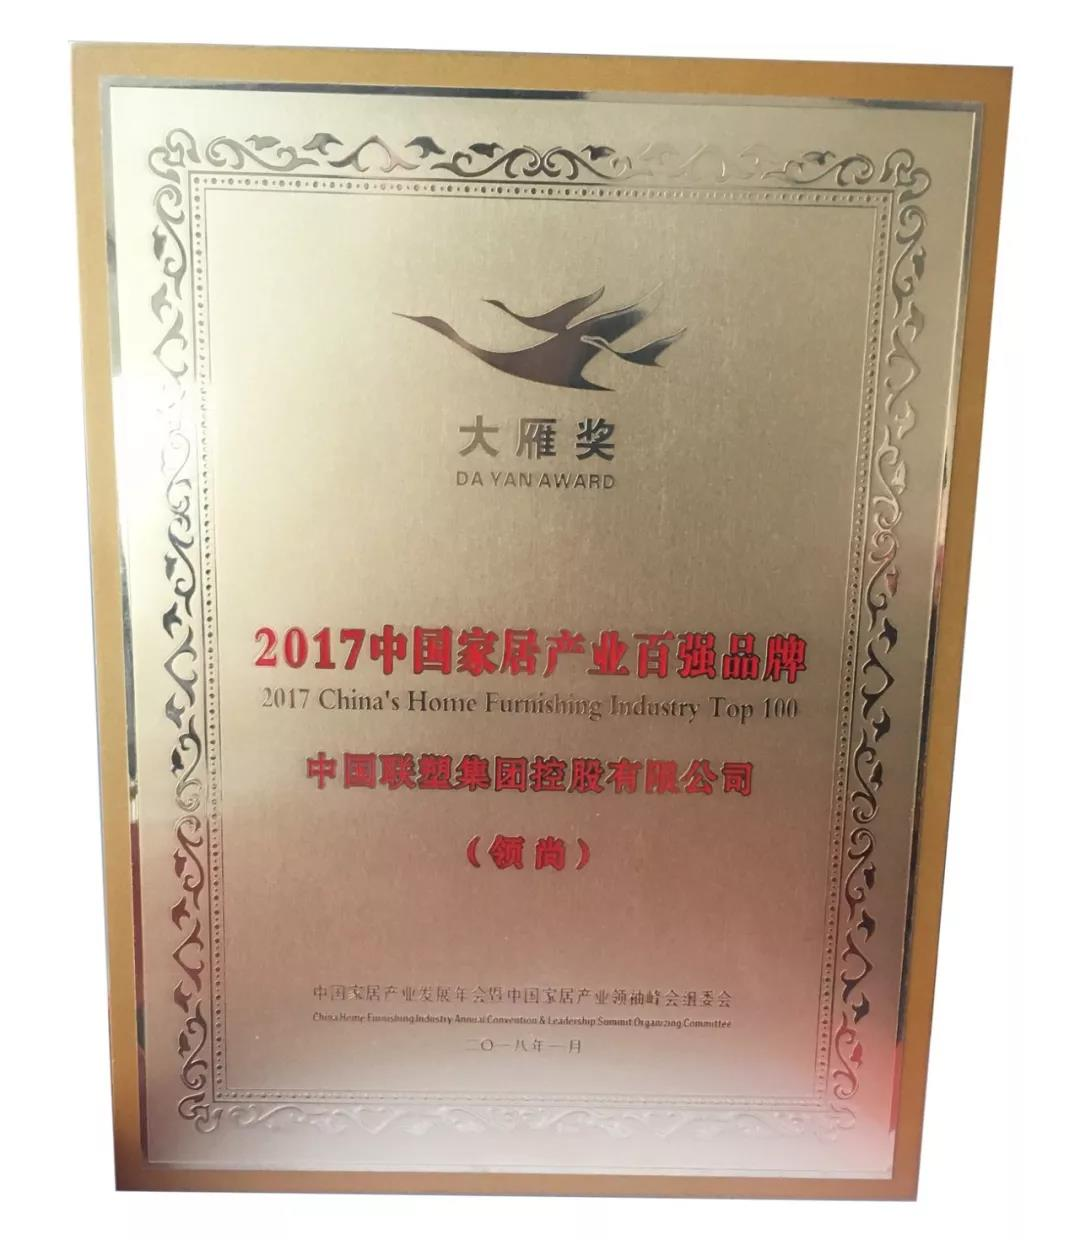 Lesso 2017 China's Home Furnishing Industry Top100